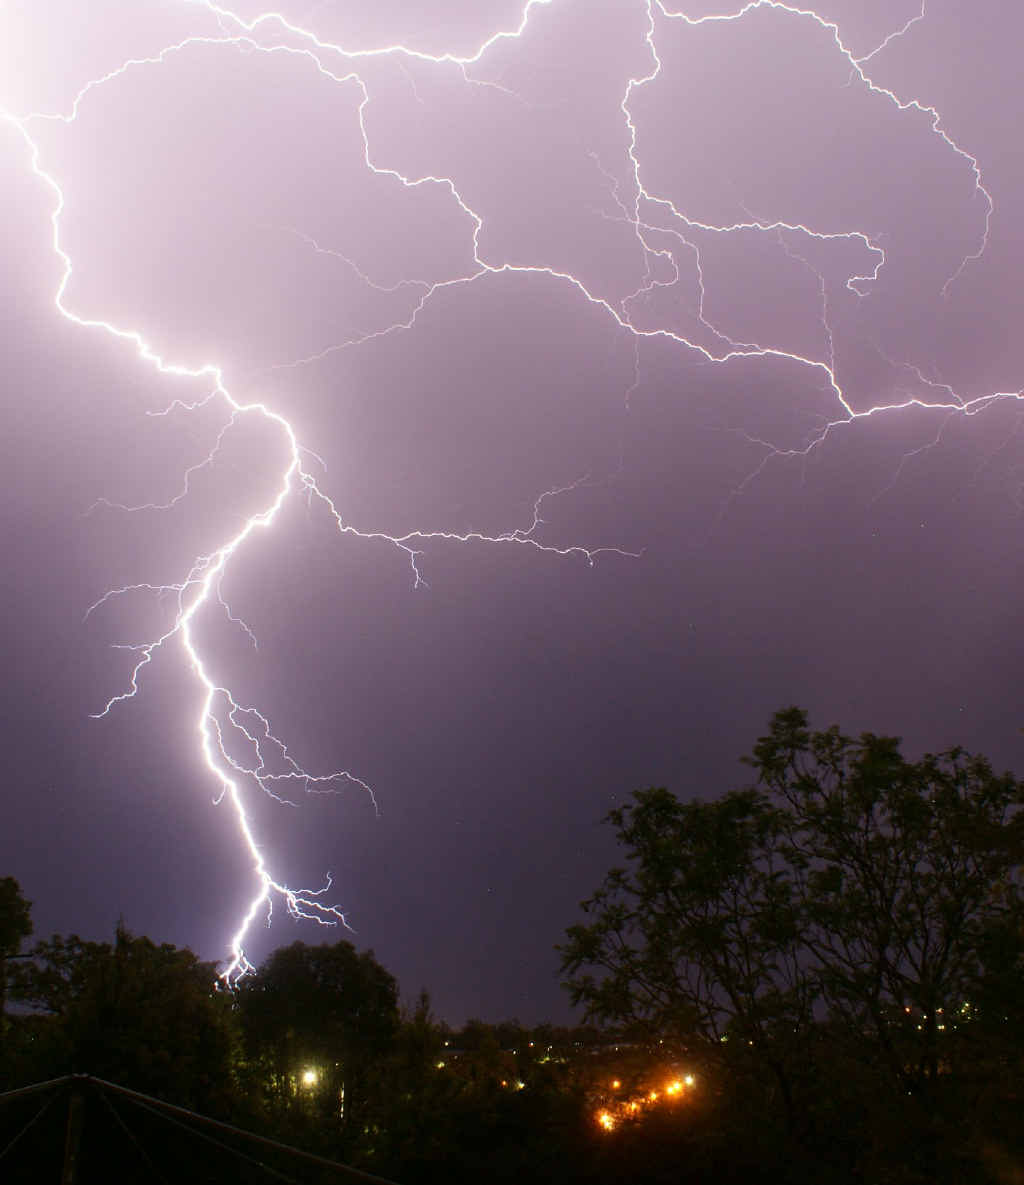 A man has been struck and killed by lightning while hiking.